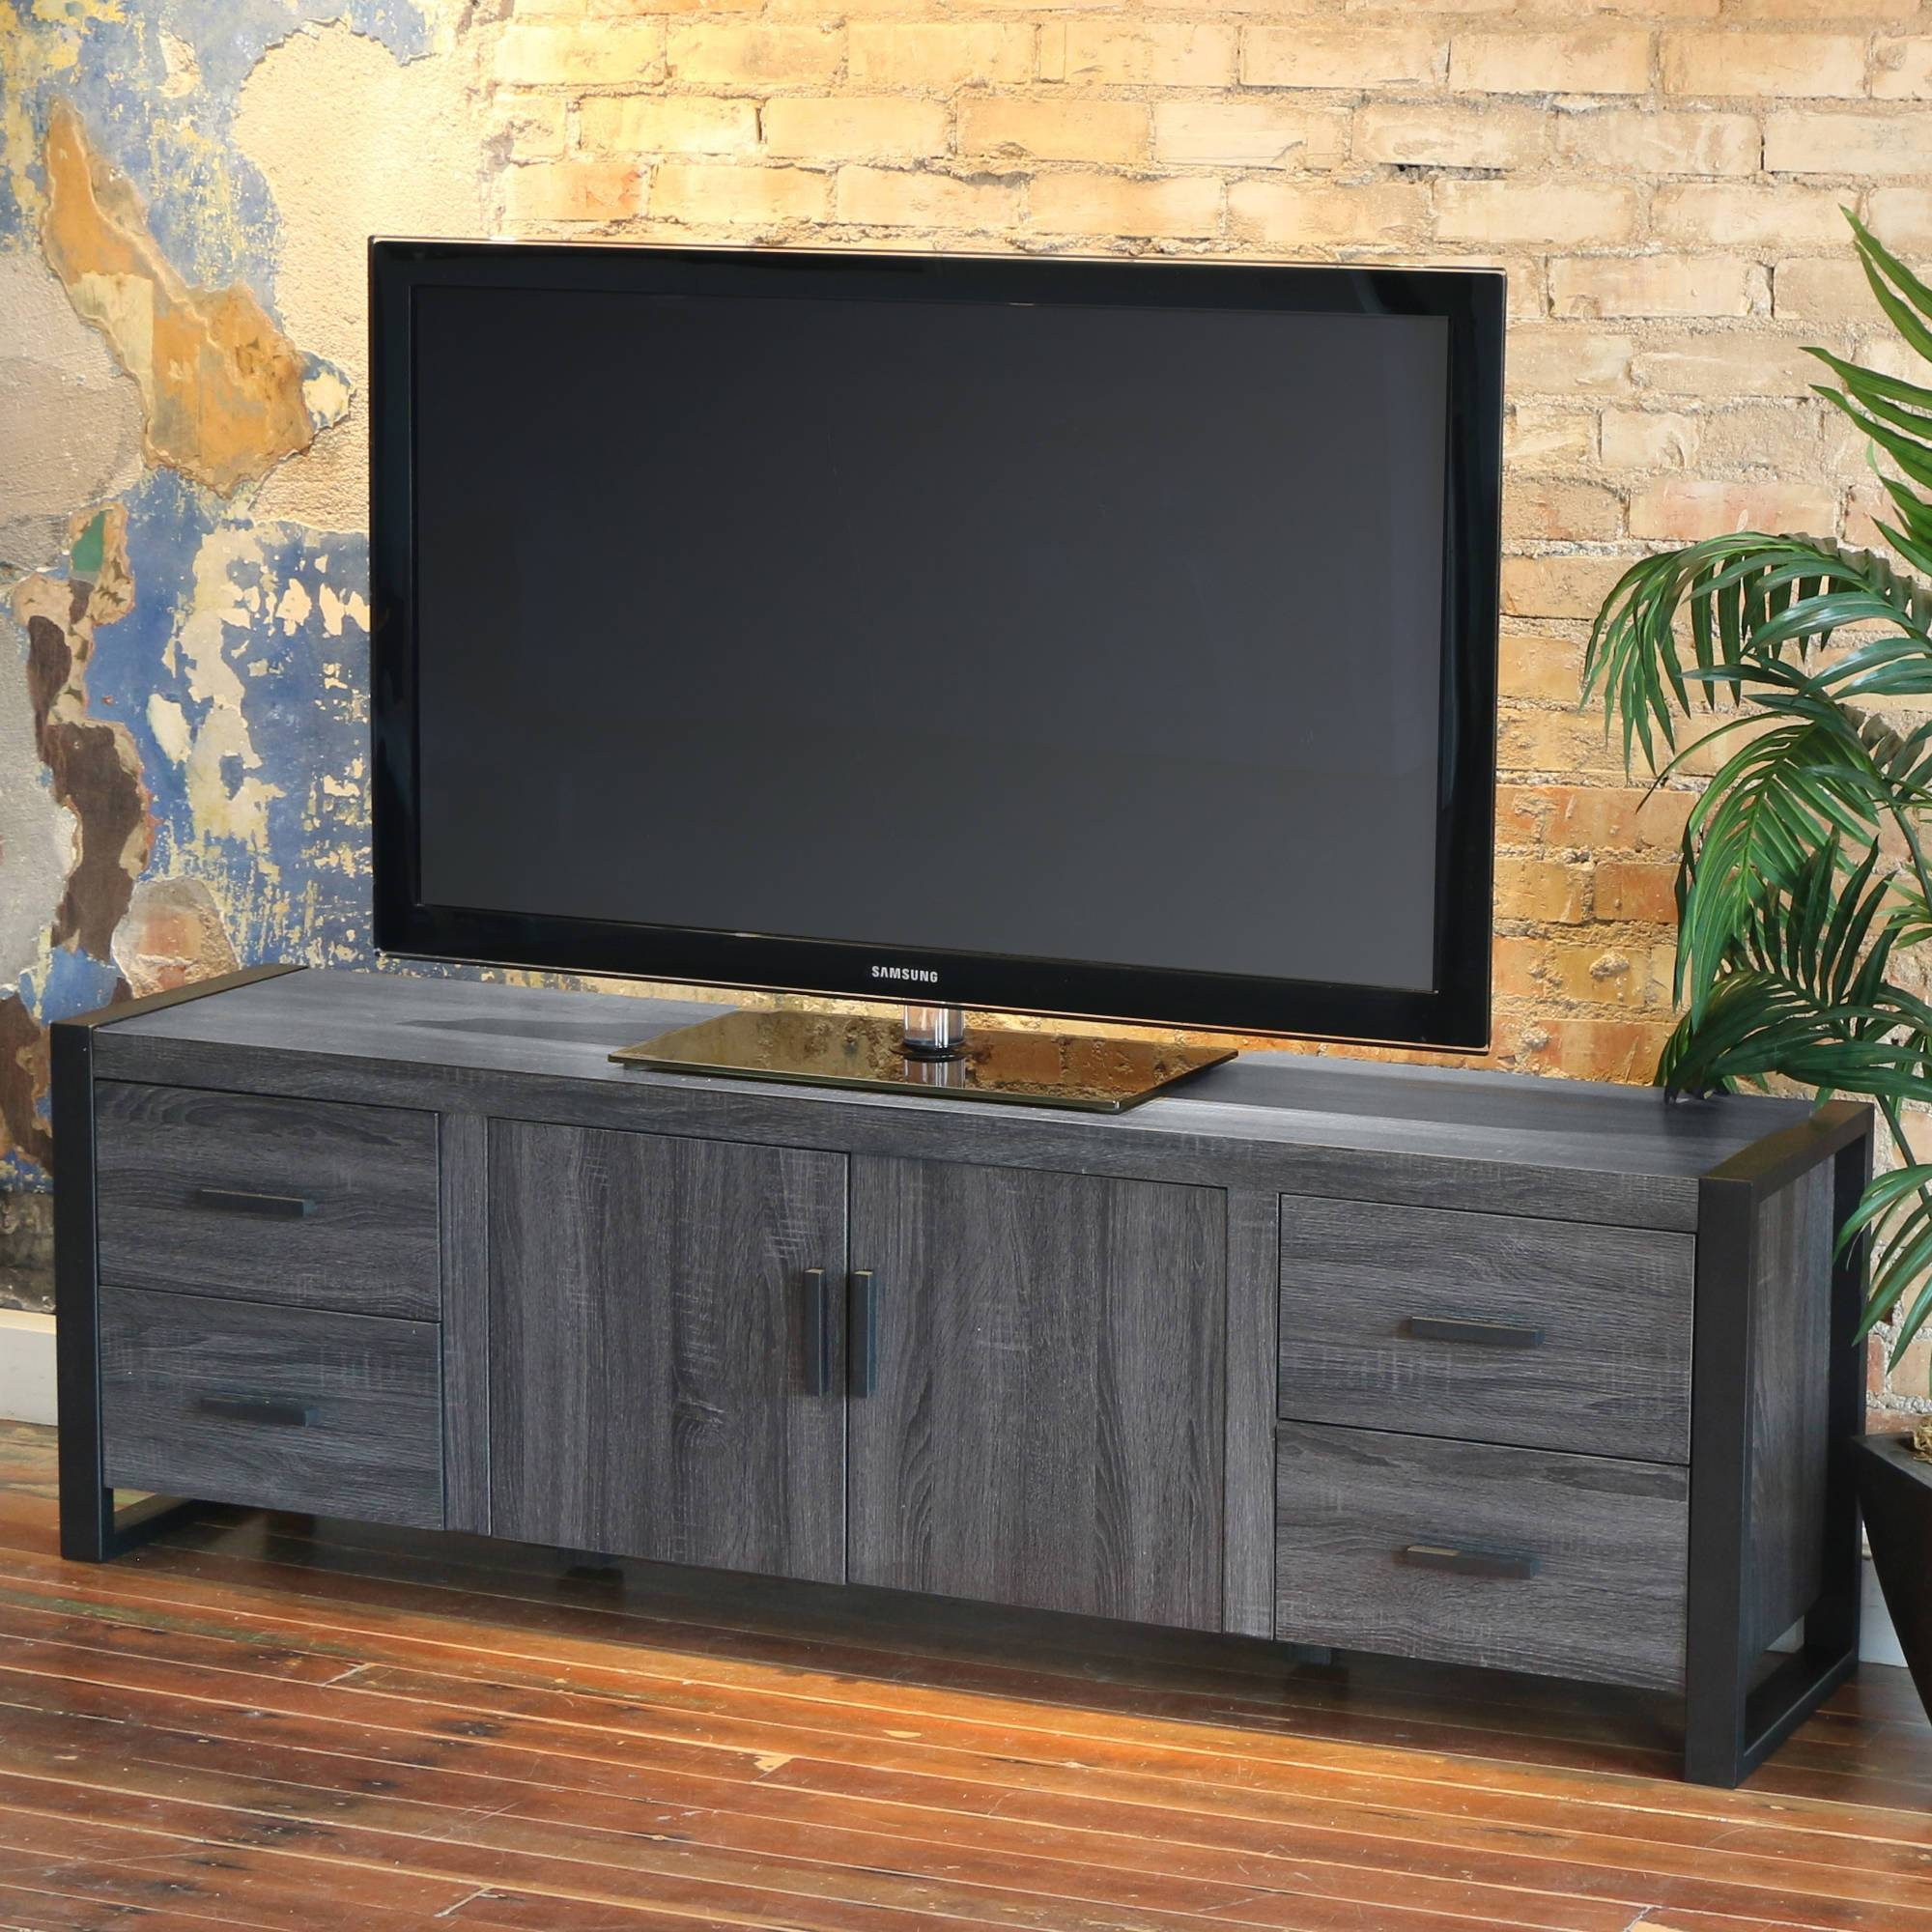 "Walker Edison Reclaimed Wood Tv Stand For Tvs Up To 70"", Multiple for Grey Wood Tv Stands (Image 14 of 15)"